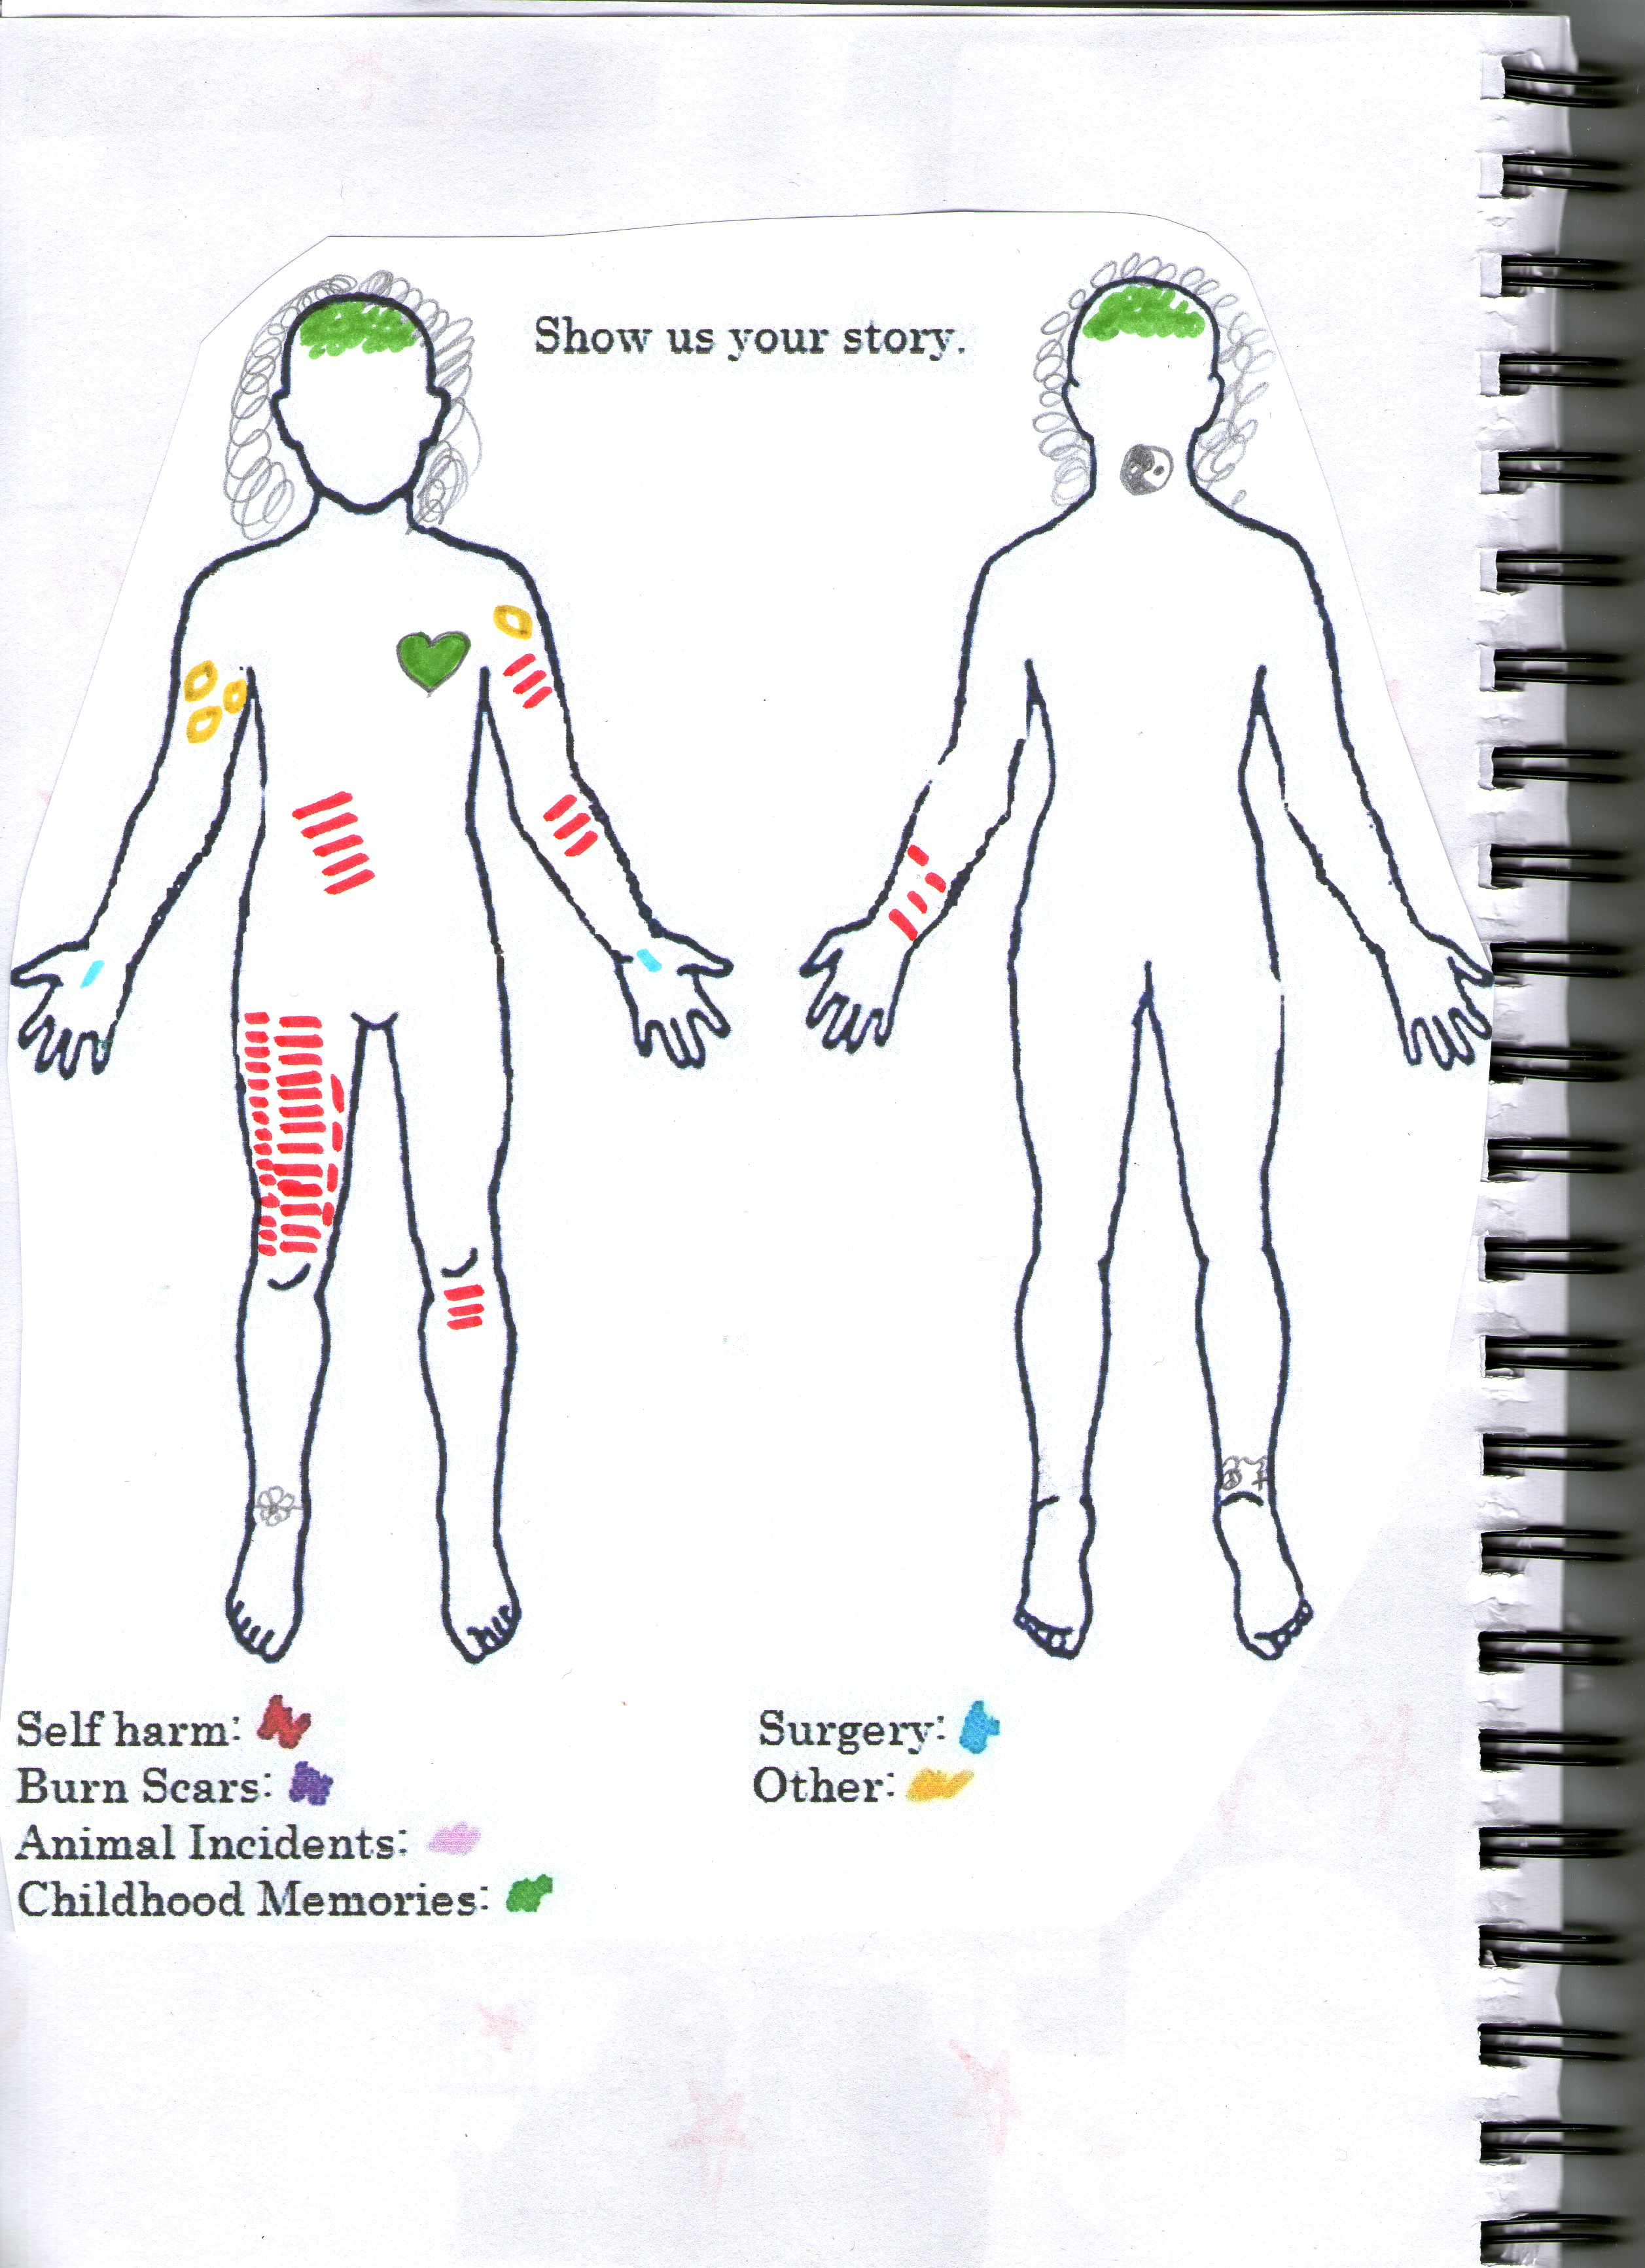 Drawn scar show me Image Harm Day & Support